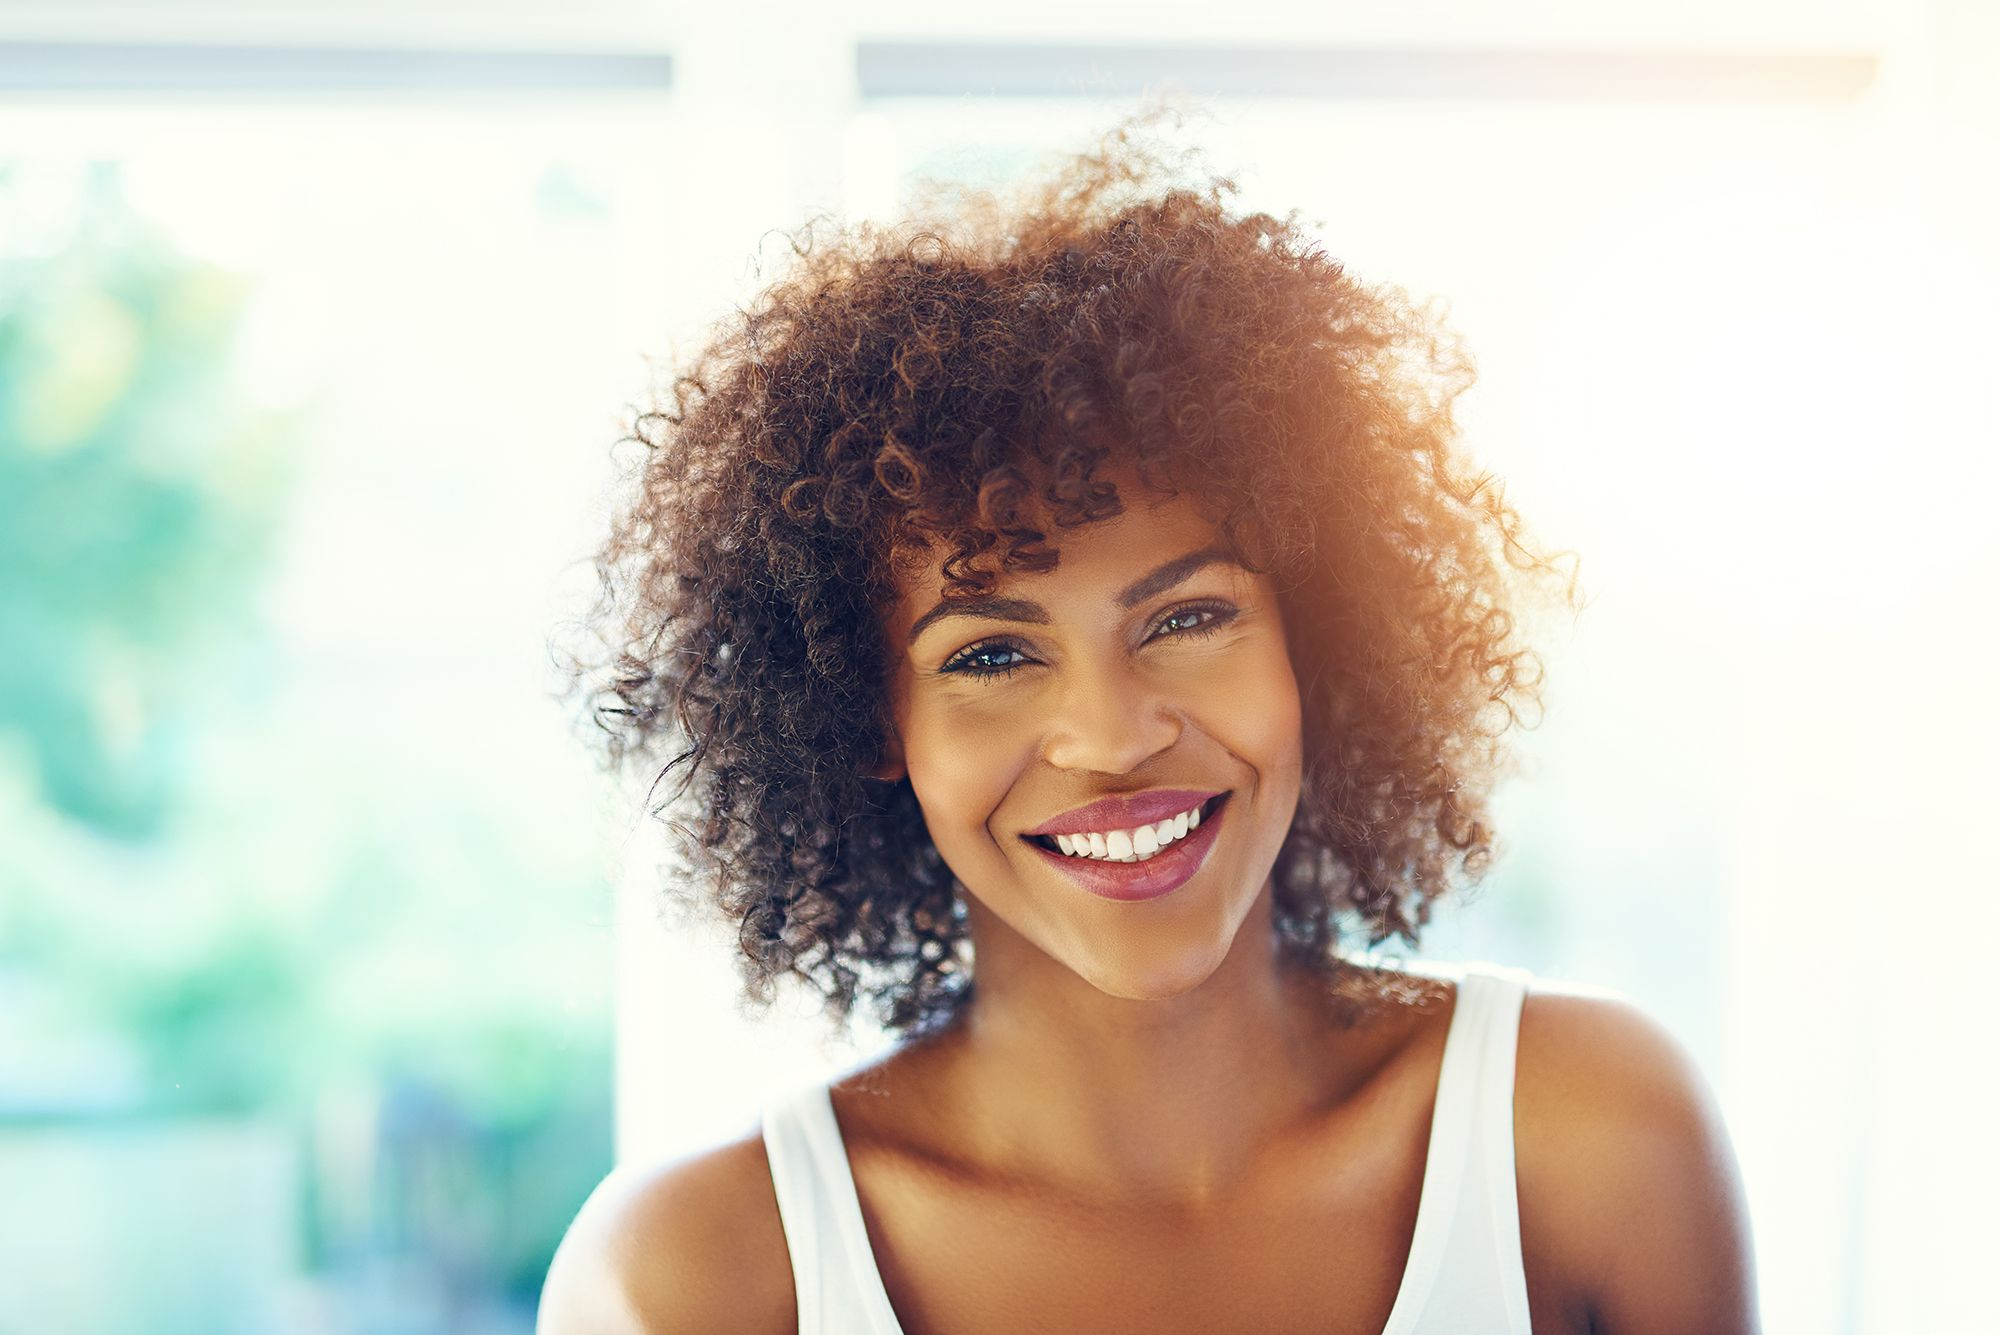 Why You Might Want To Get Cosmetic Surgery